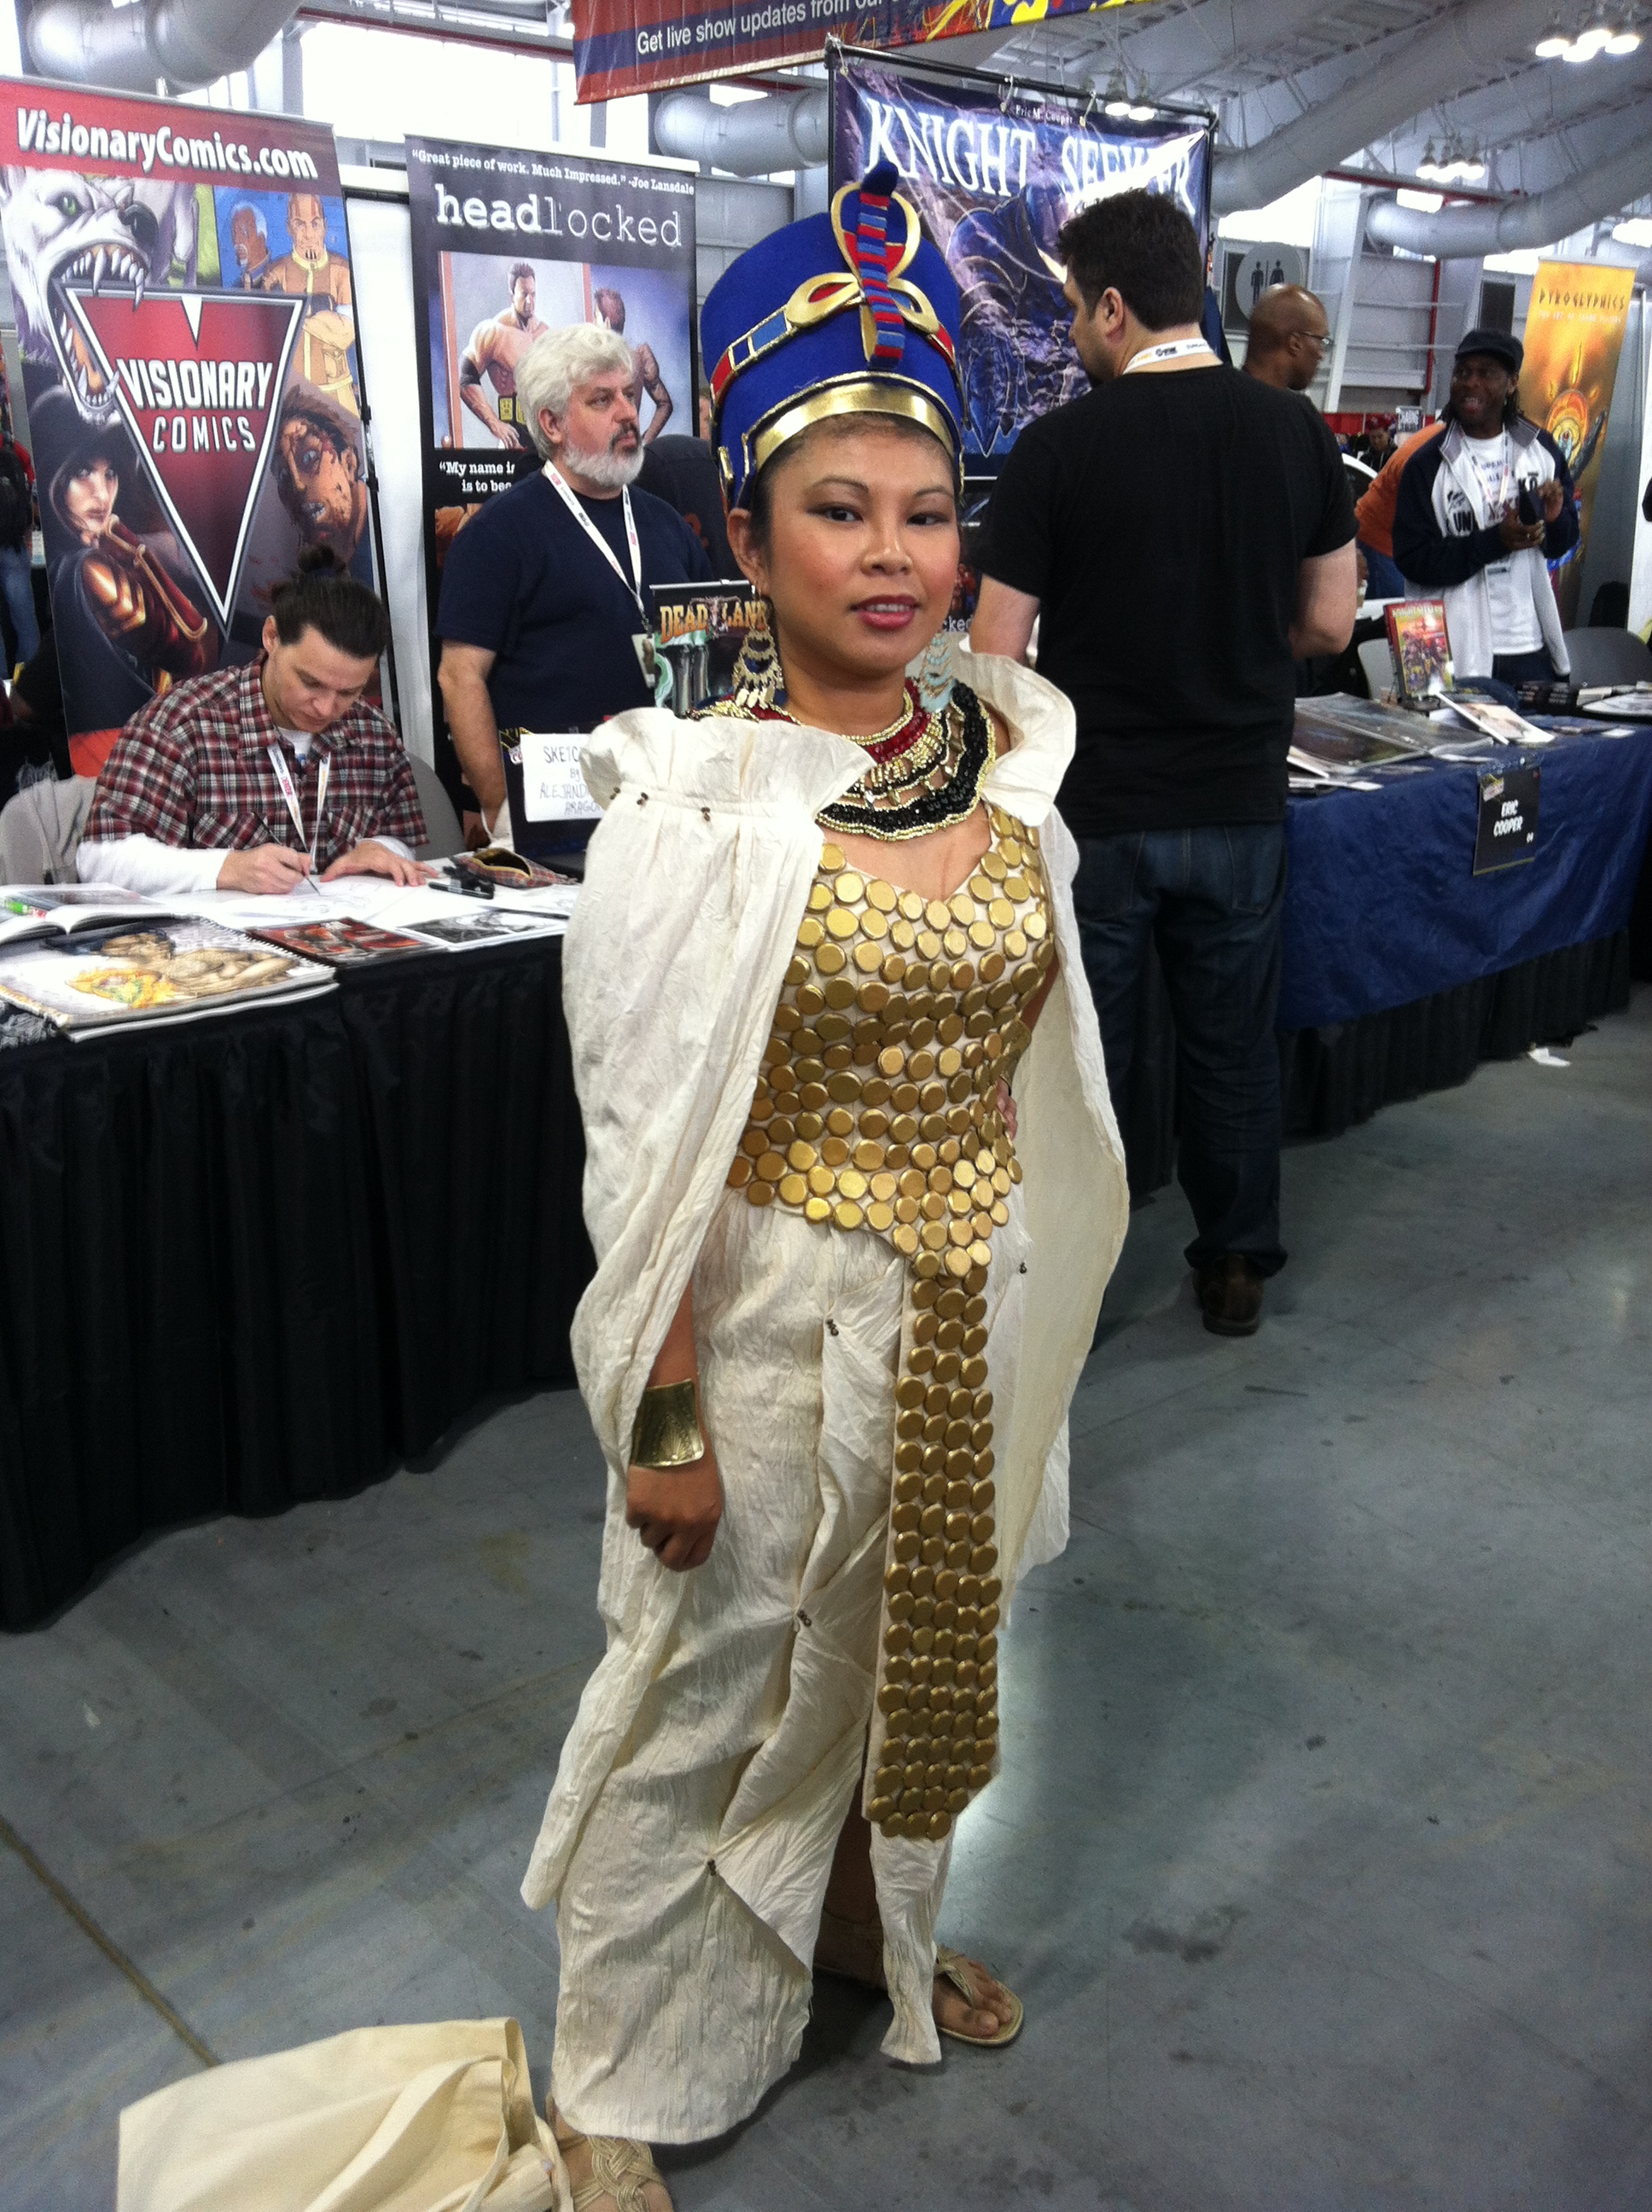 nefertiti doctor who cosplay  sc 1 st  Lady Geek Girl - WordPress.com & nefertiti doctor who cosplay | Lady Geek Girl and Friends